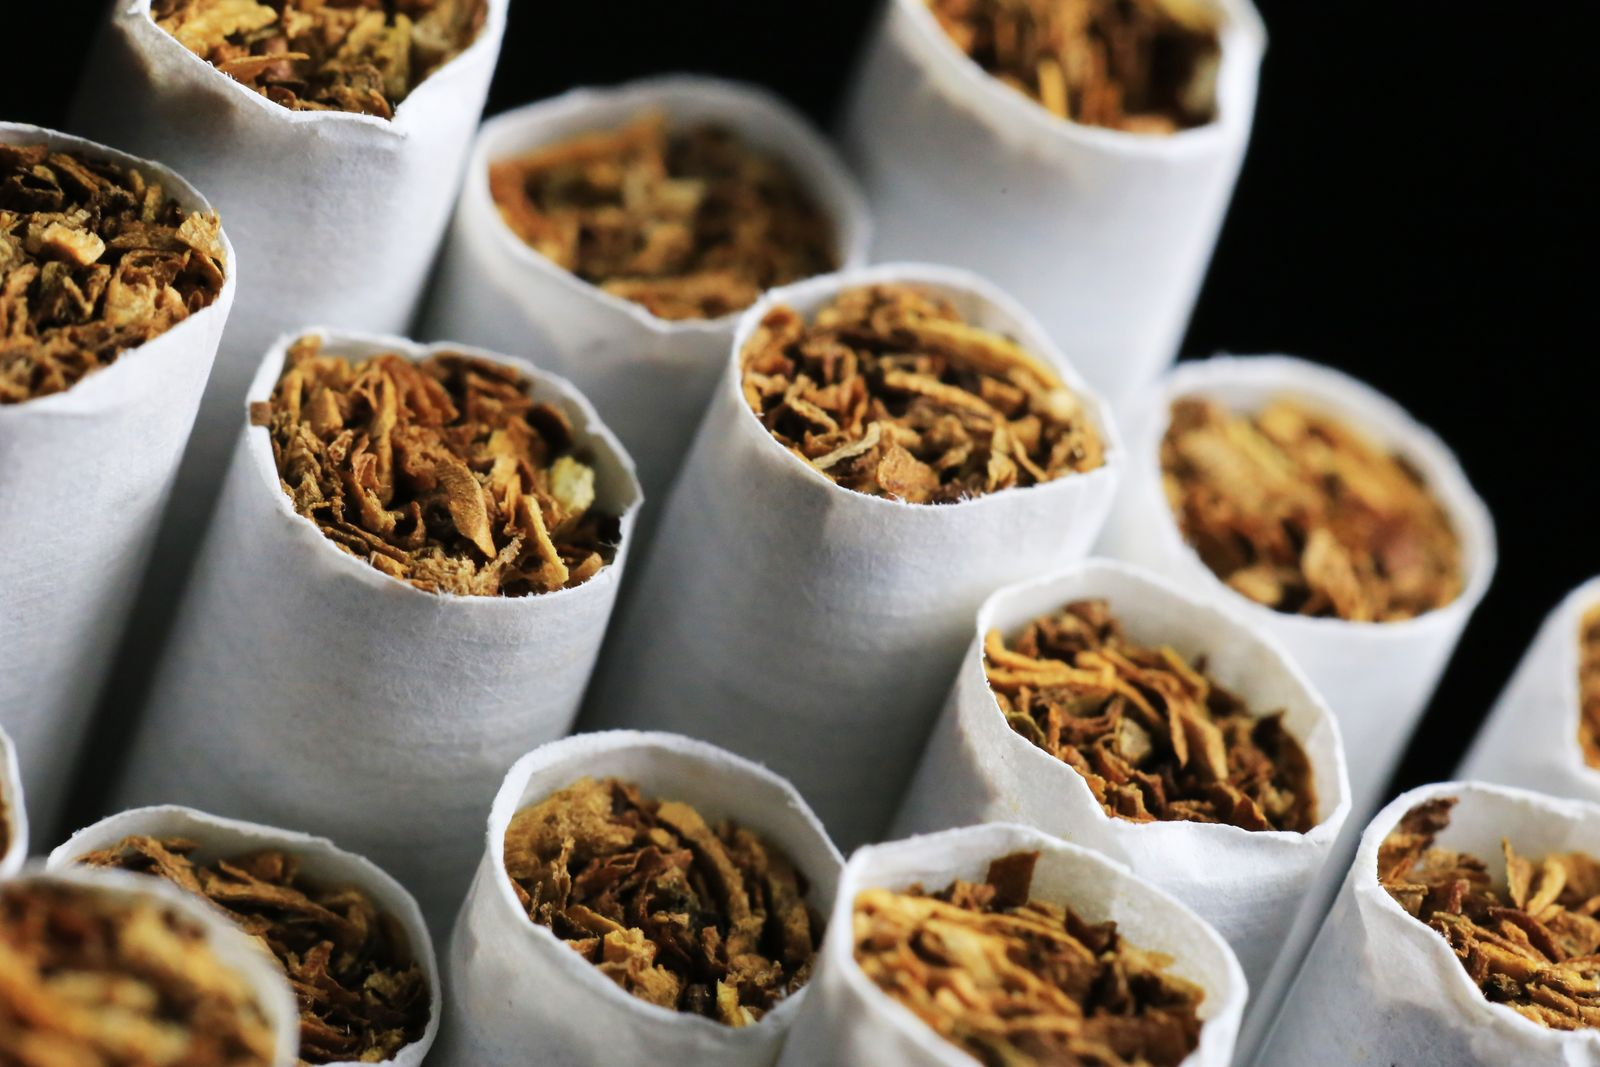 Close-up of Tobacco in Cigarettes